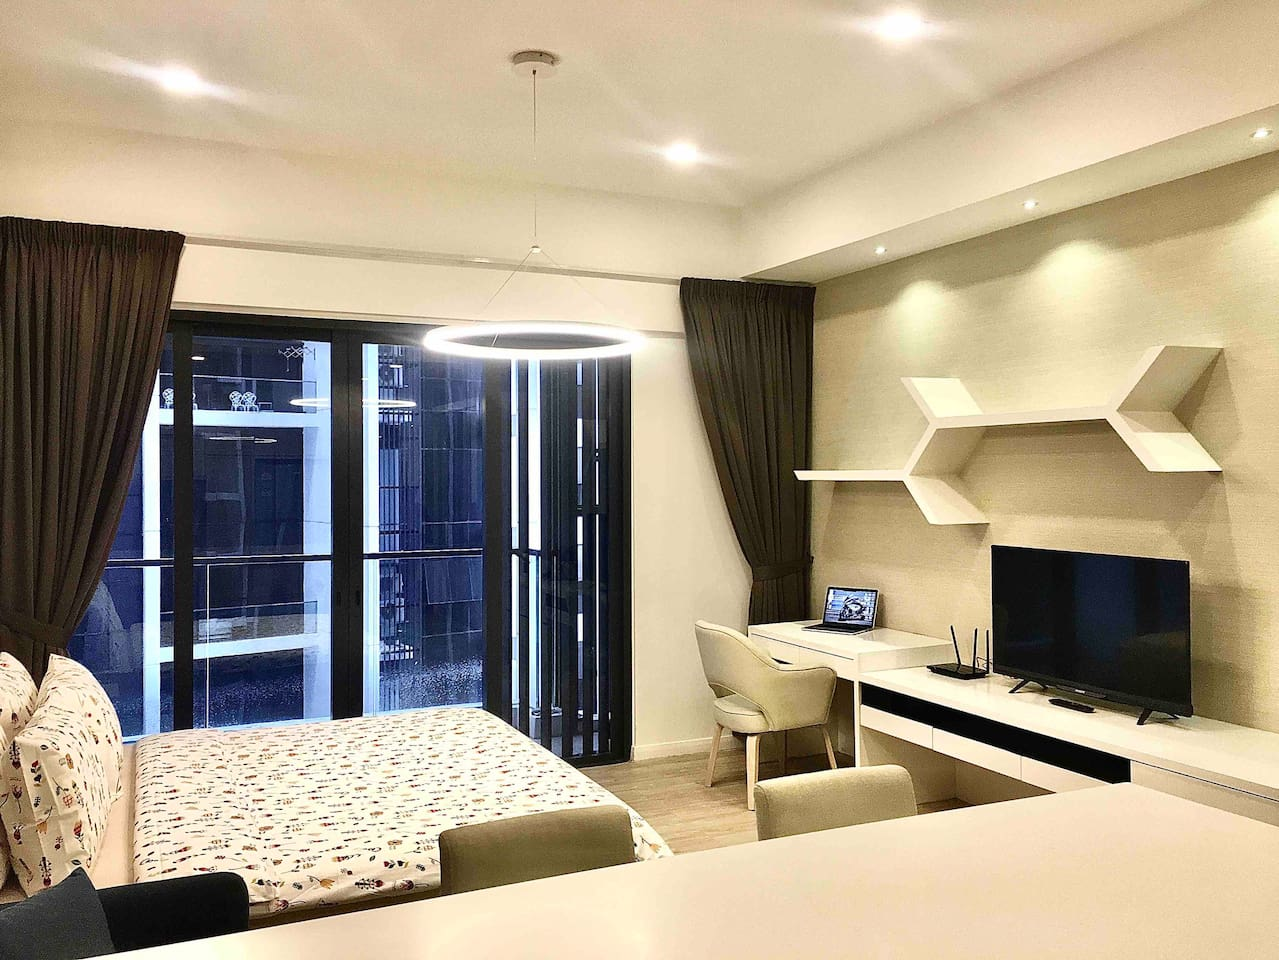 Studio Apartment (King-size bed) with Balcony